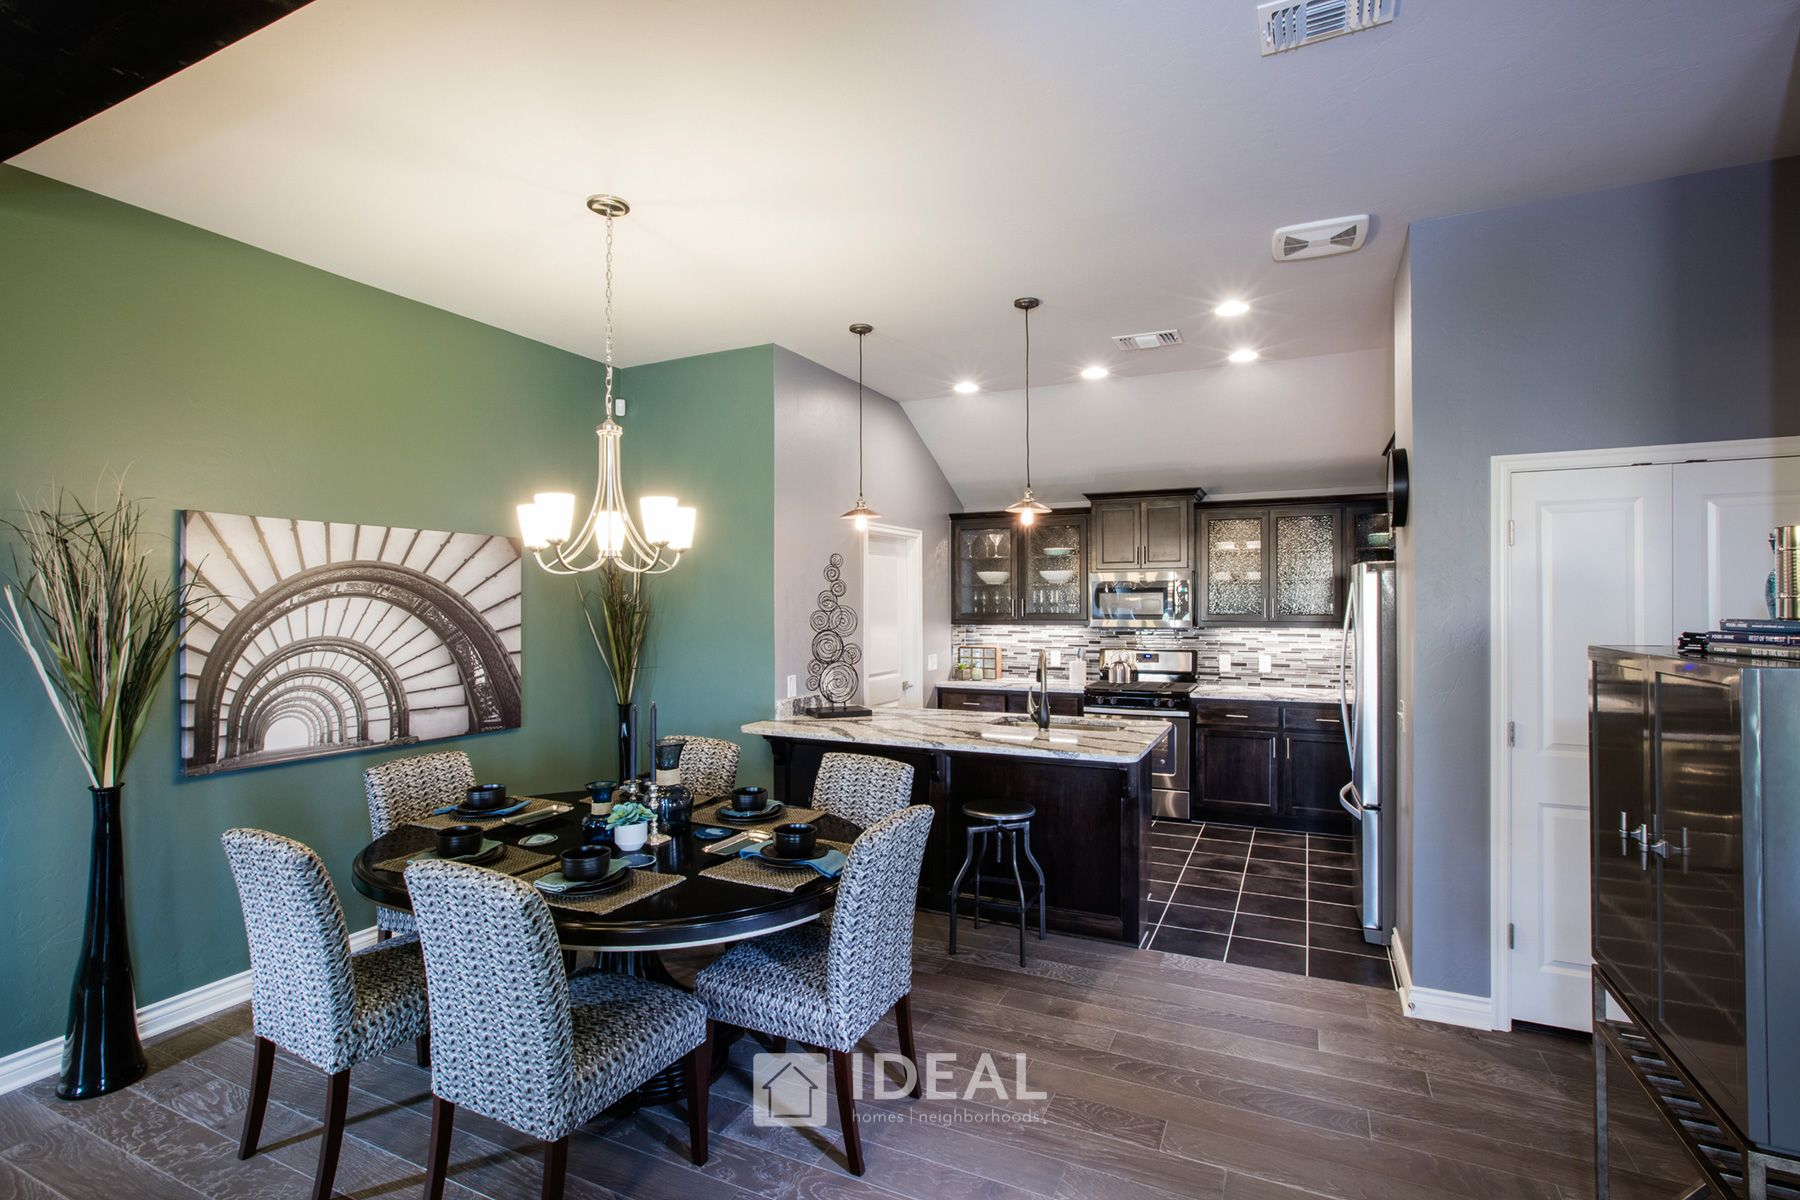 Kitchen featured in the Jefferson By Ideal Homes in Oklahoma City, OK